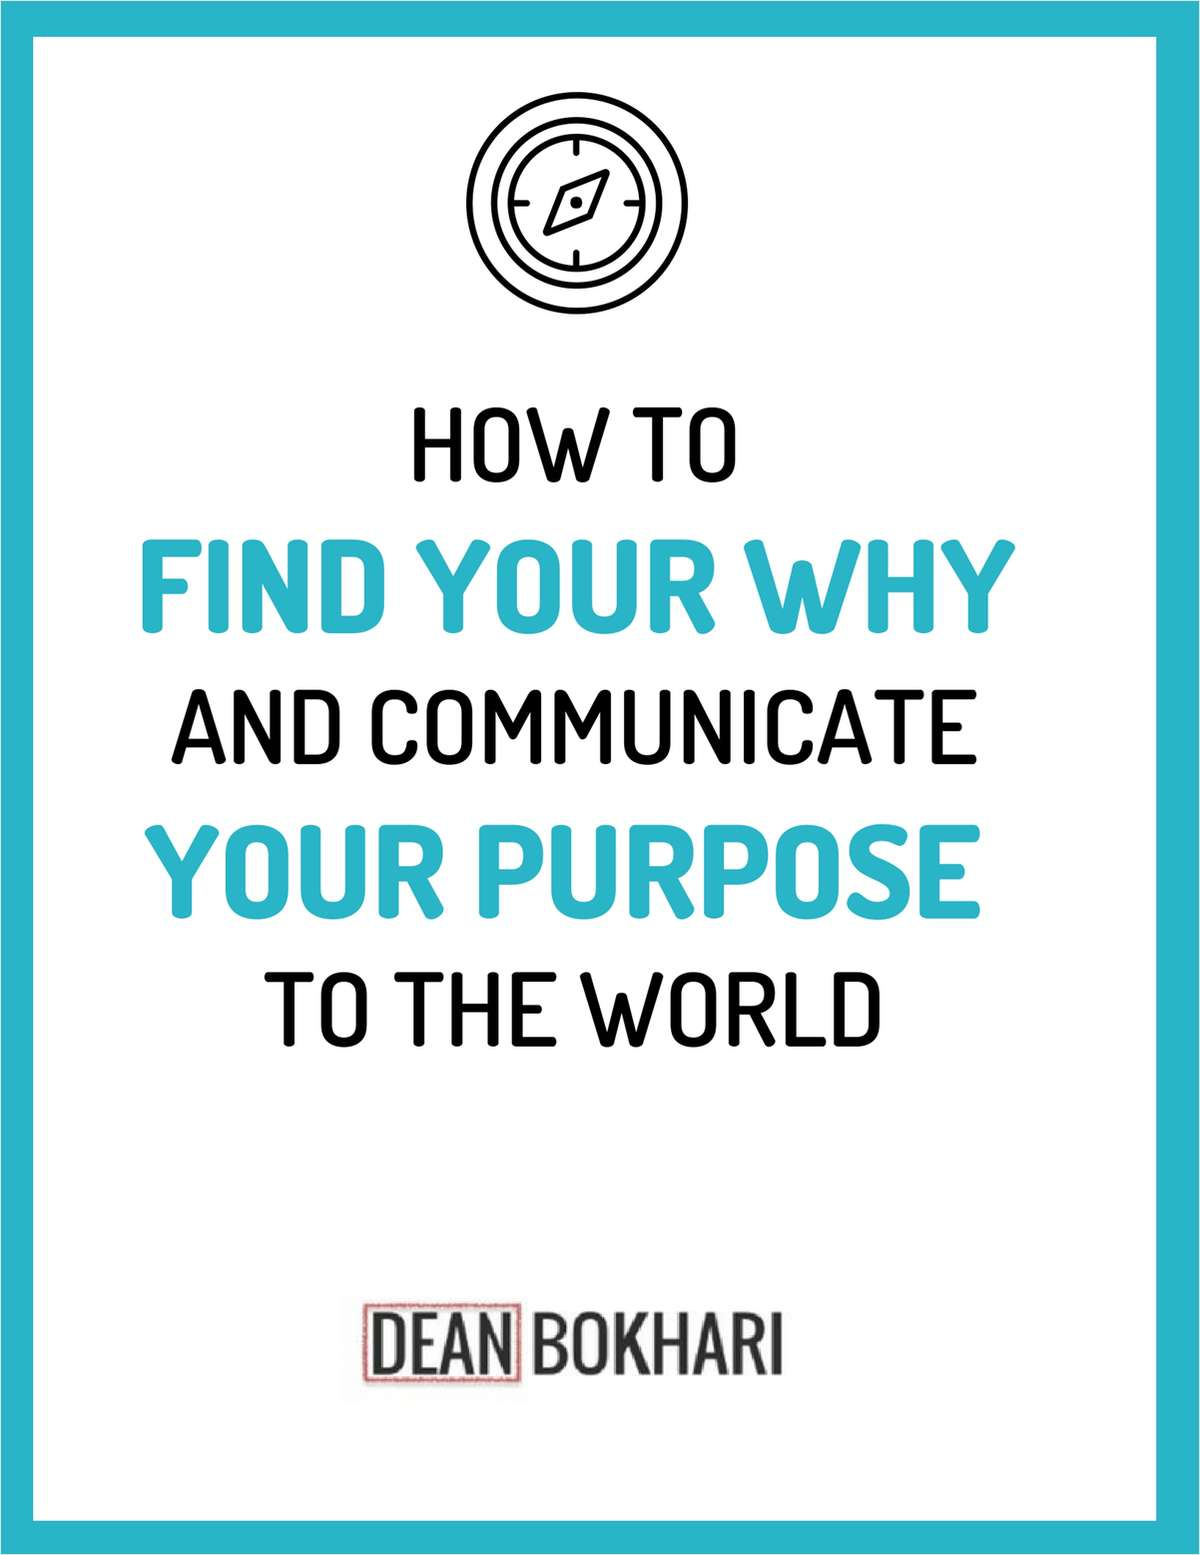 How To Find Your Why and Communicate Your Purpose to the World